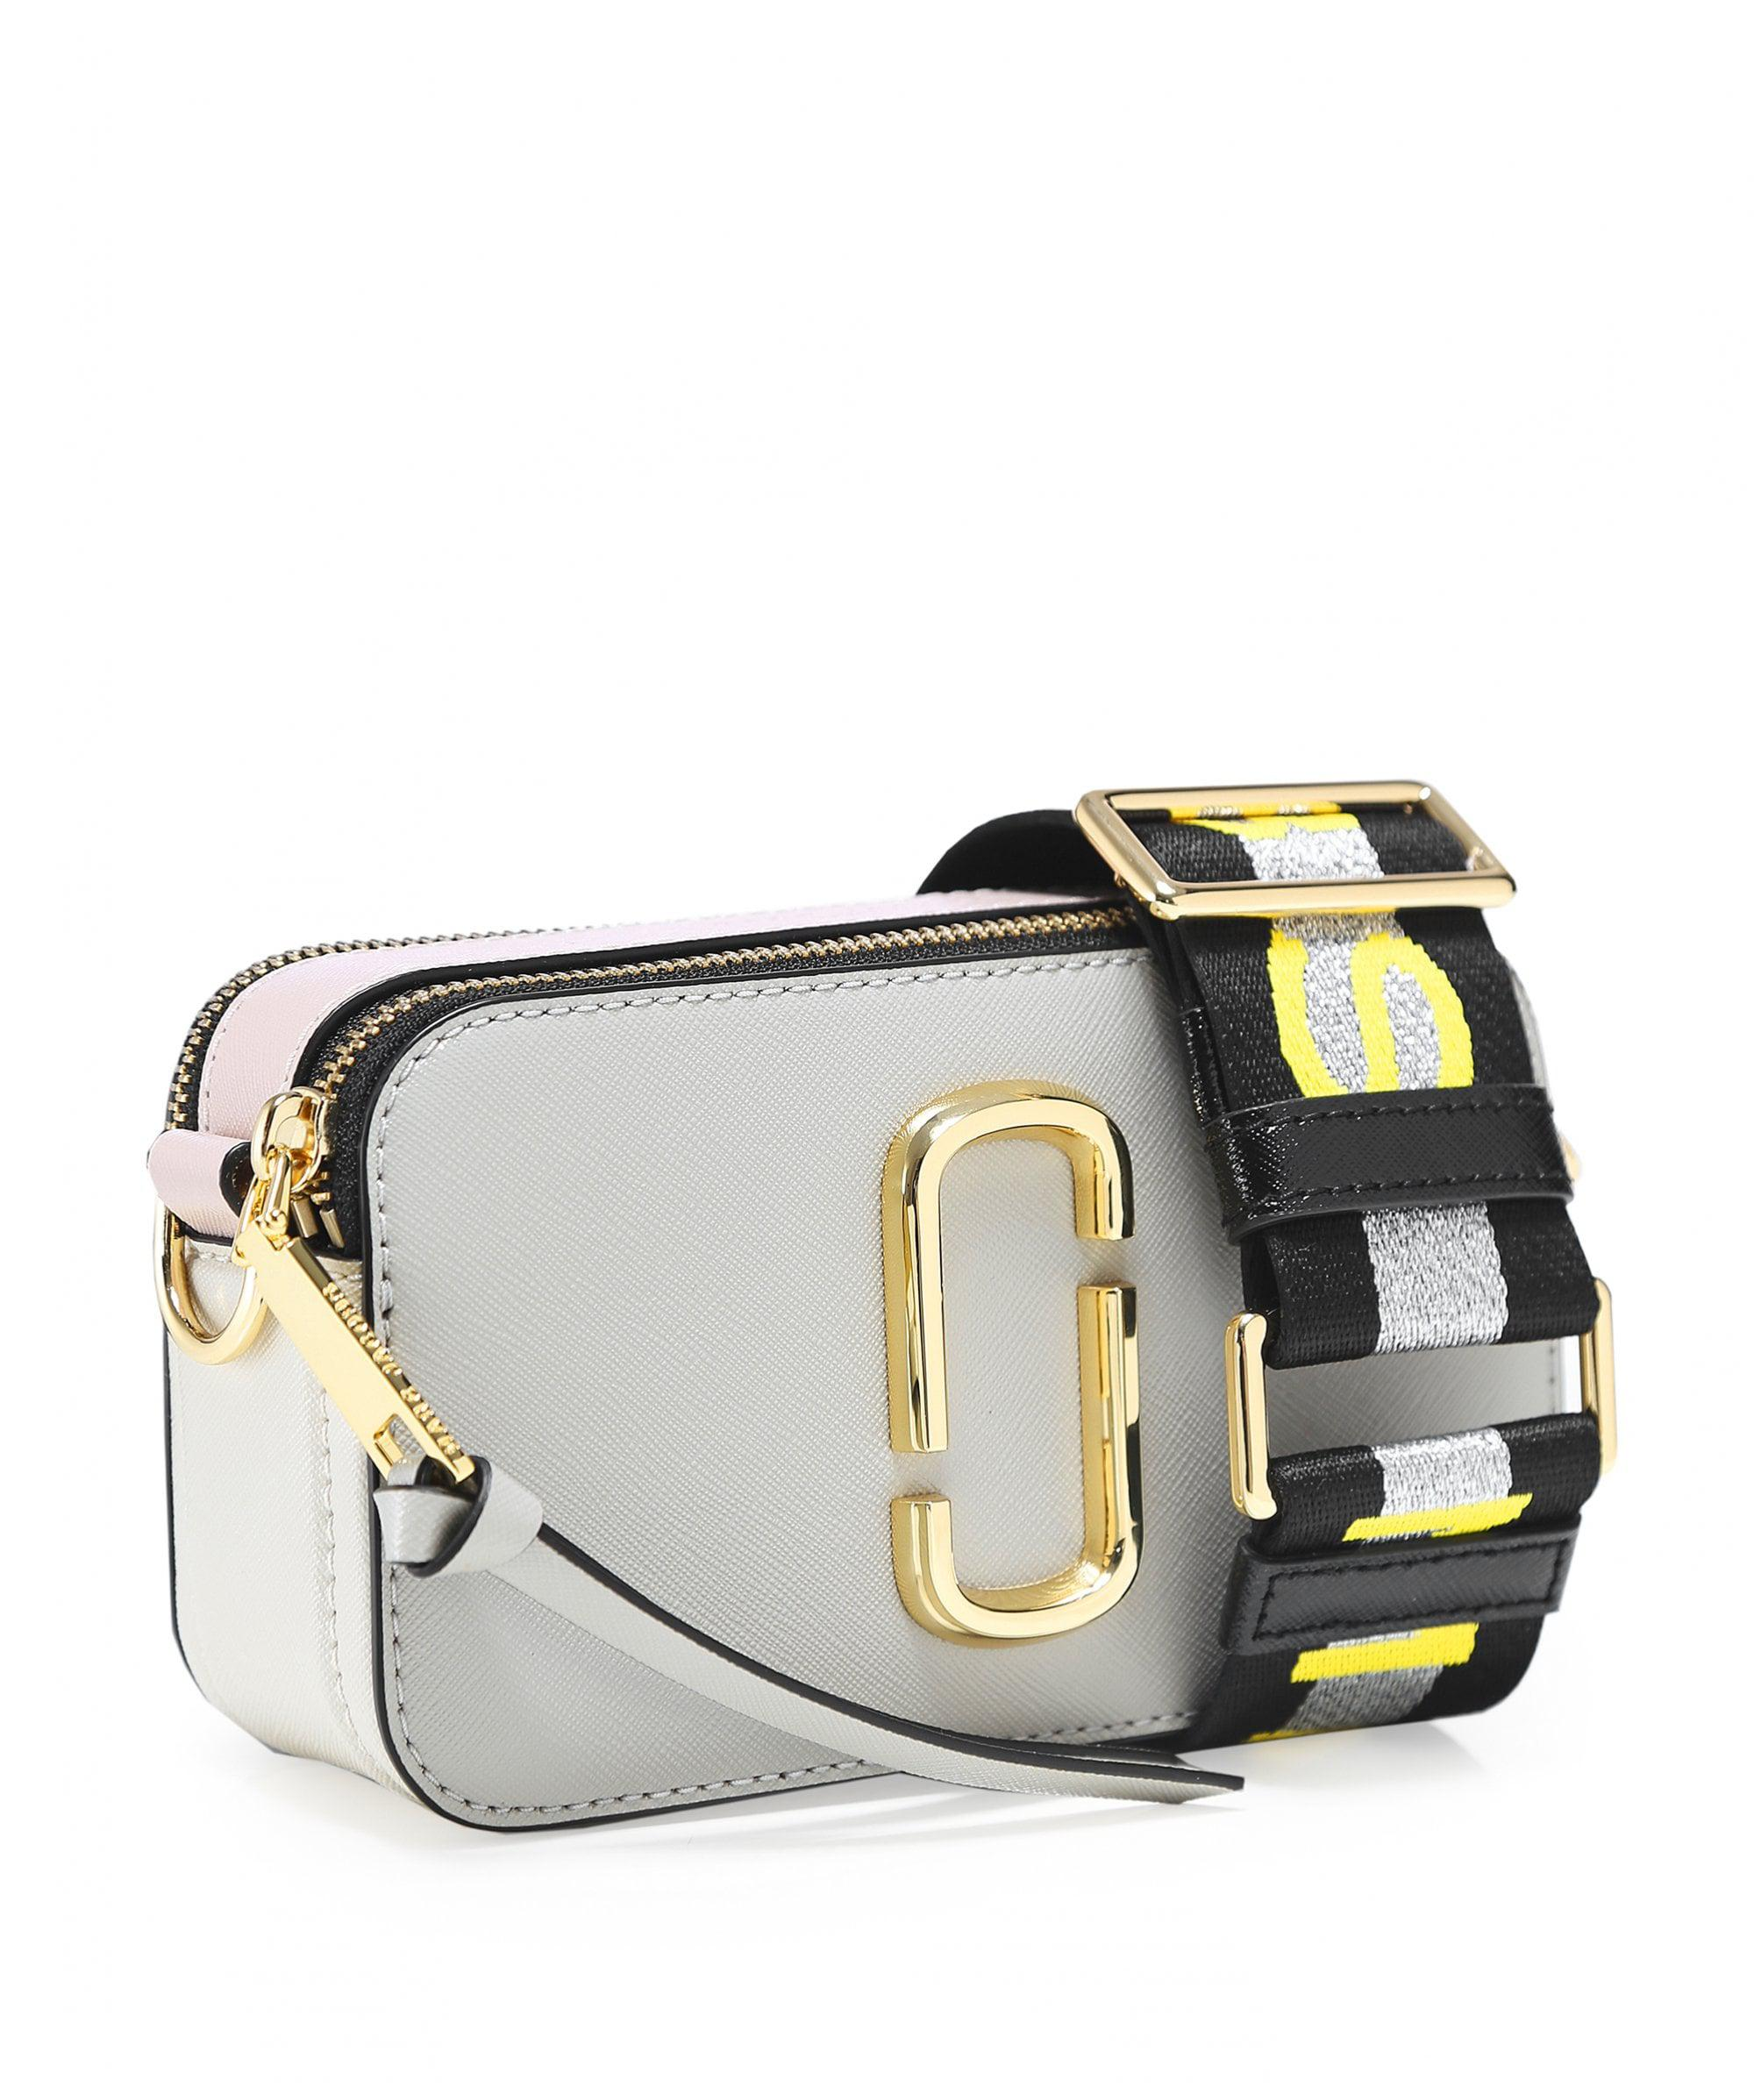 Marc Jacobs Small Snapshot Camera Bag in Gray - Lyst 393a8508376de